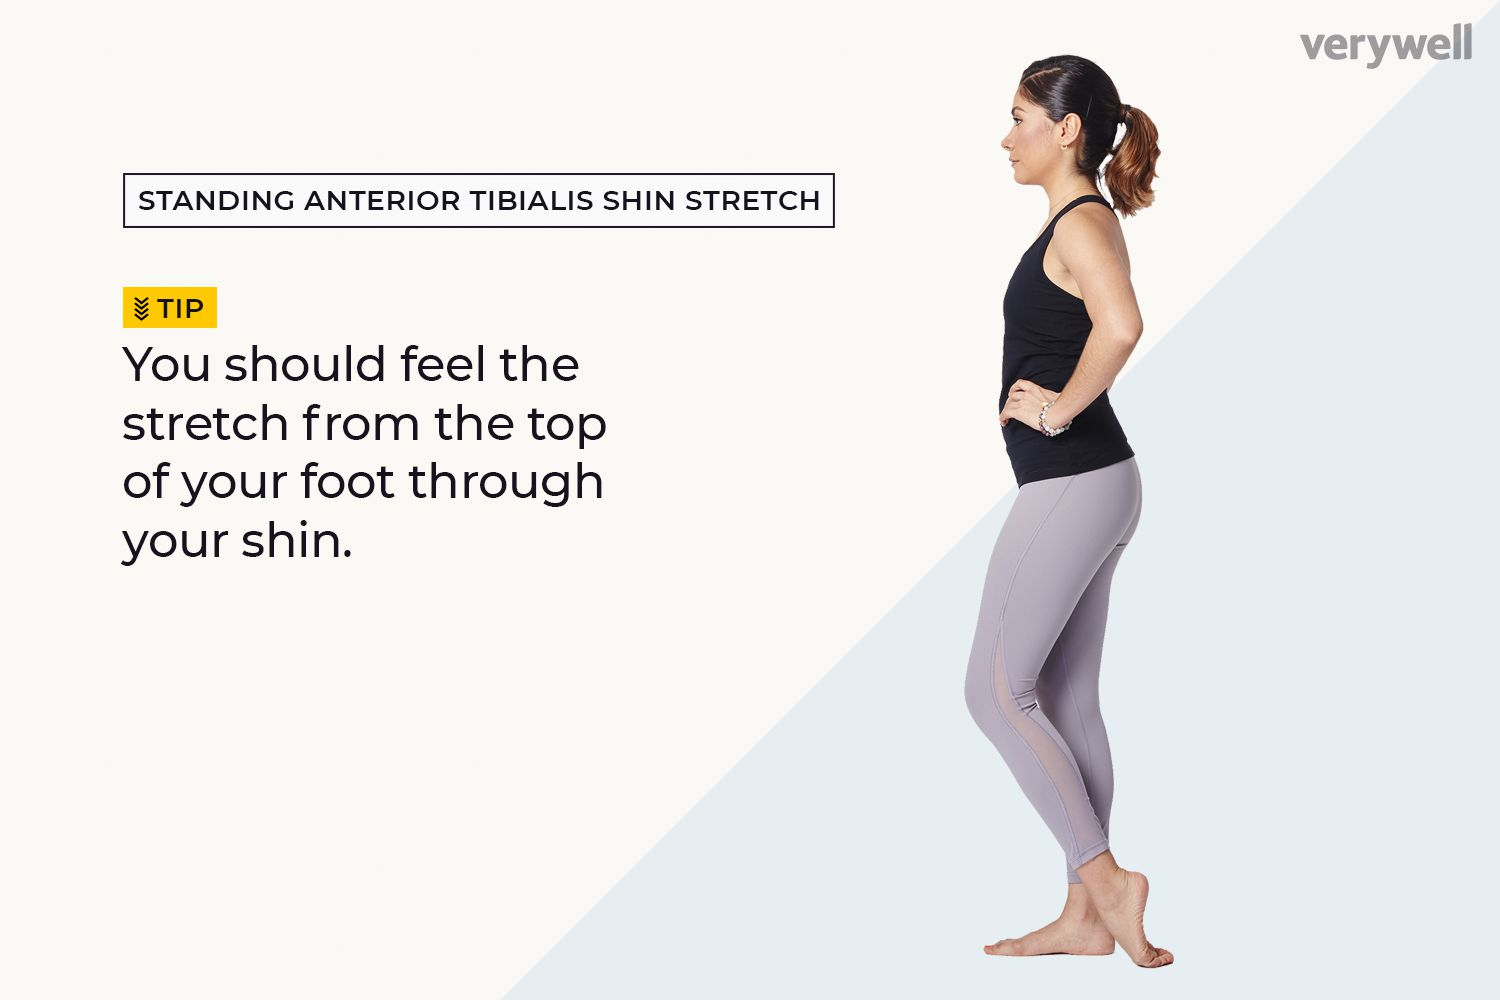 Stretch Your Anterior Tibialis to Prevent Shin Pain